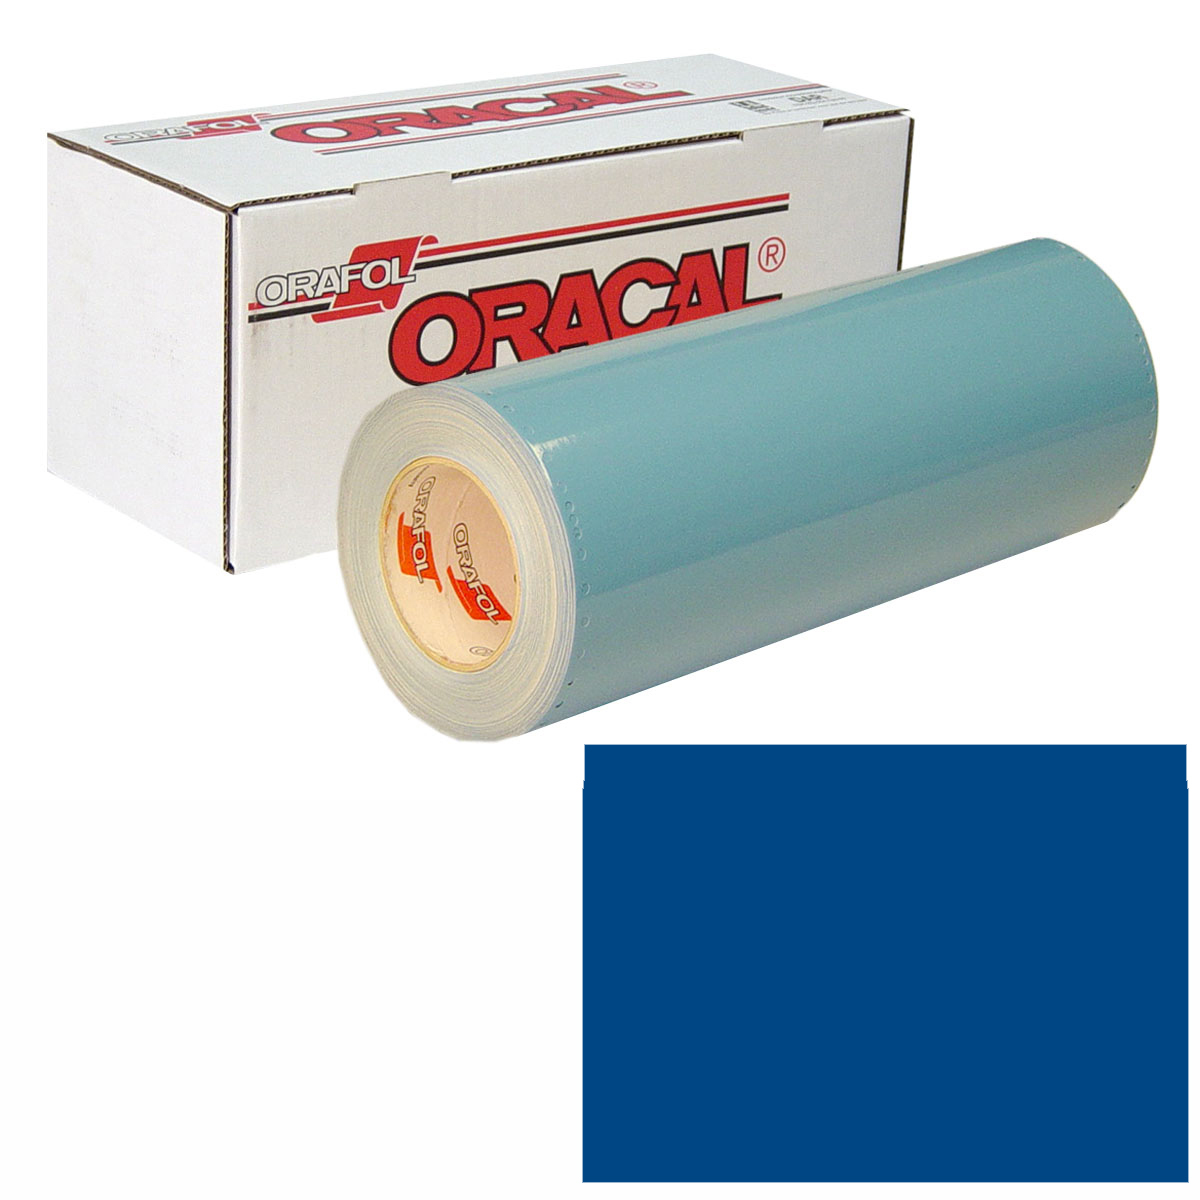 ORACAL 751 Unp 24in X 50yd 067 Blue